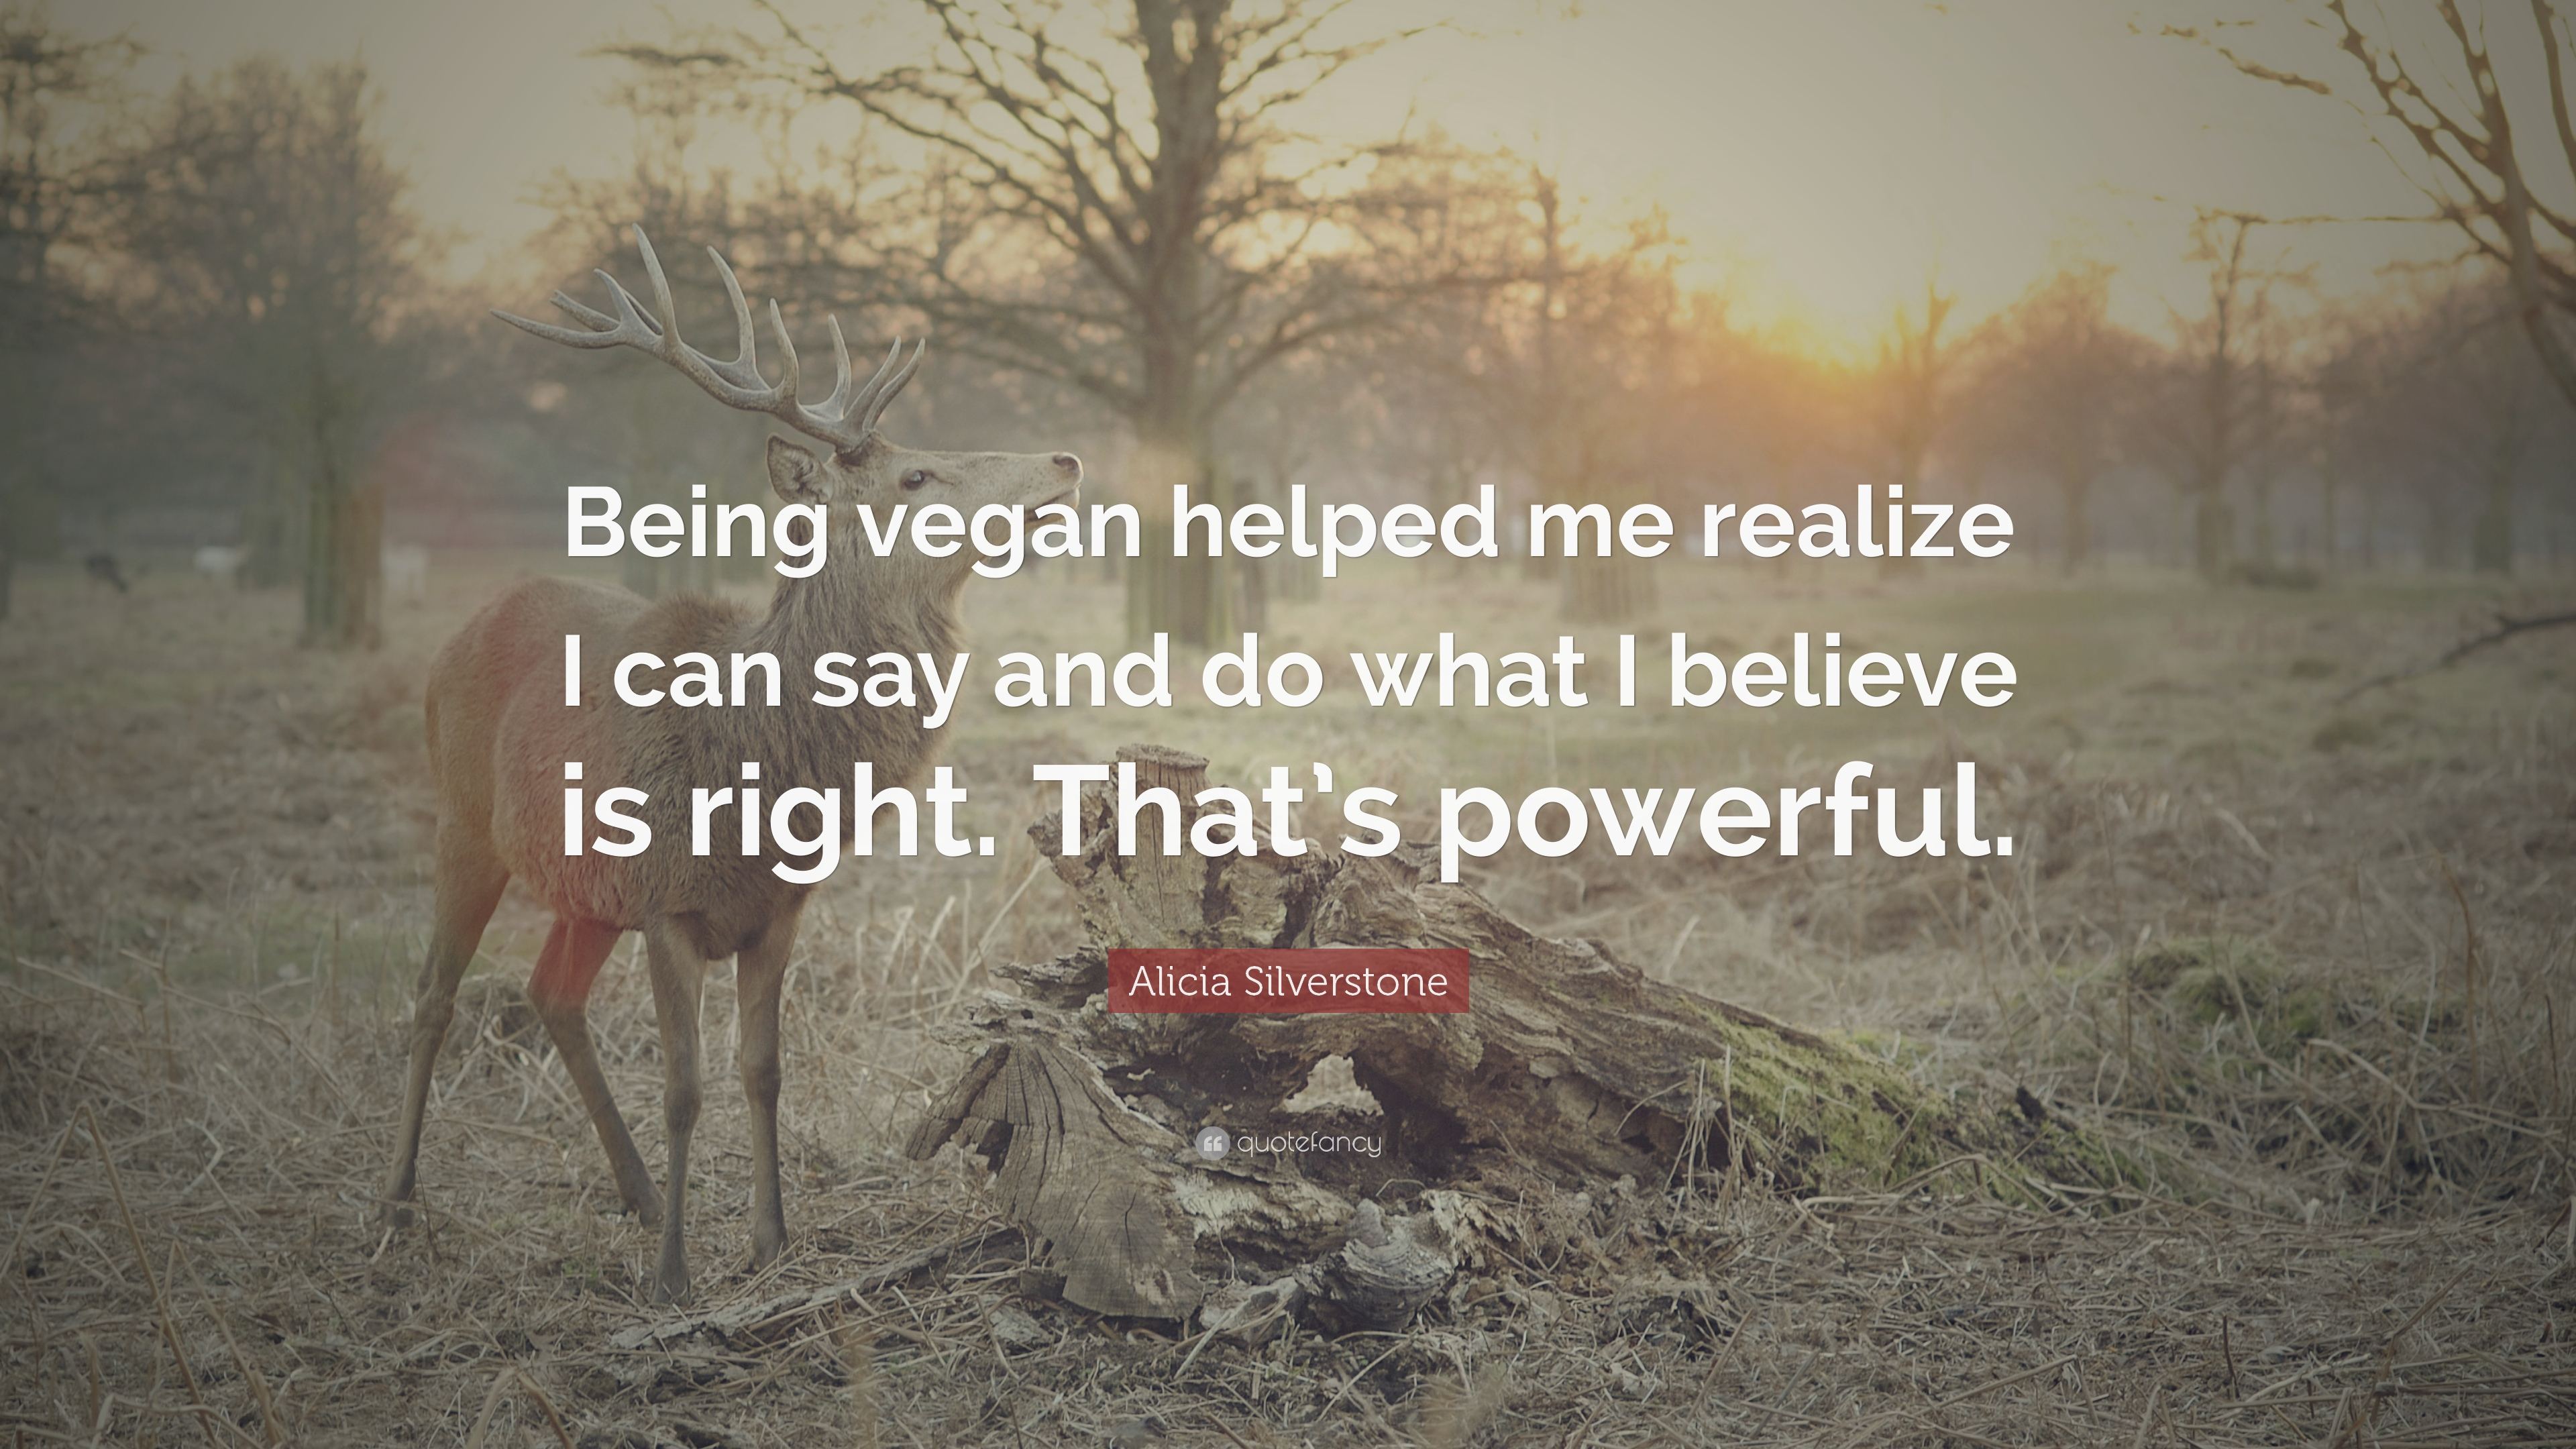 Vegan Quotes Quotes About Veganism 51 Wallpapers  Quotefancy